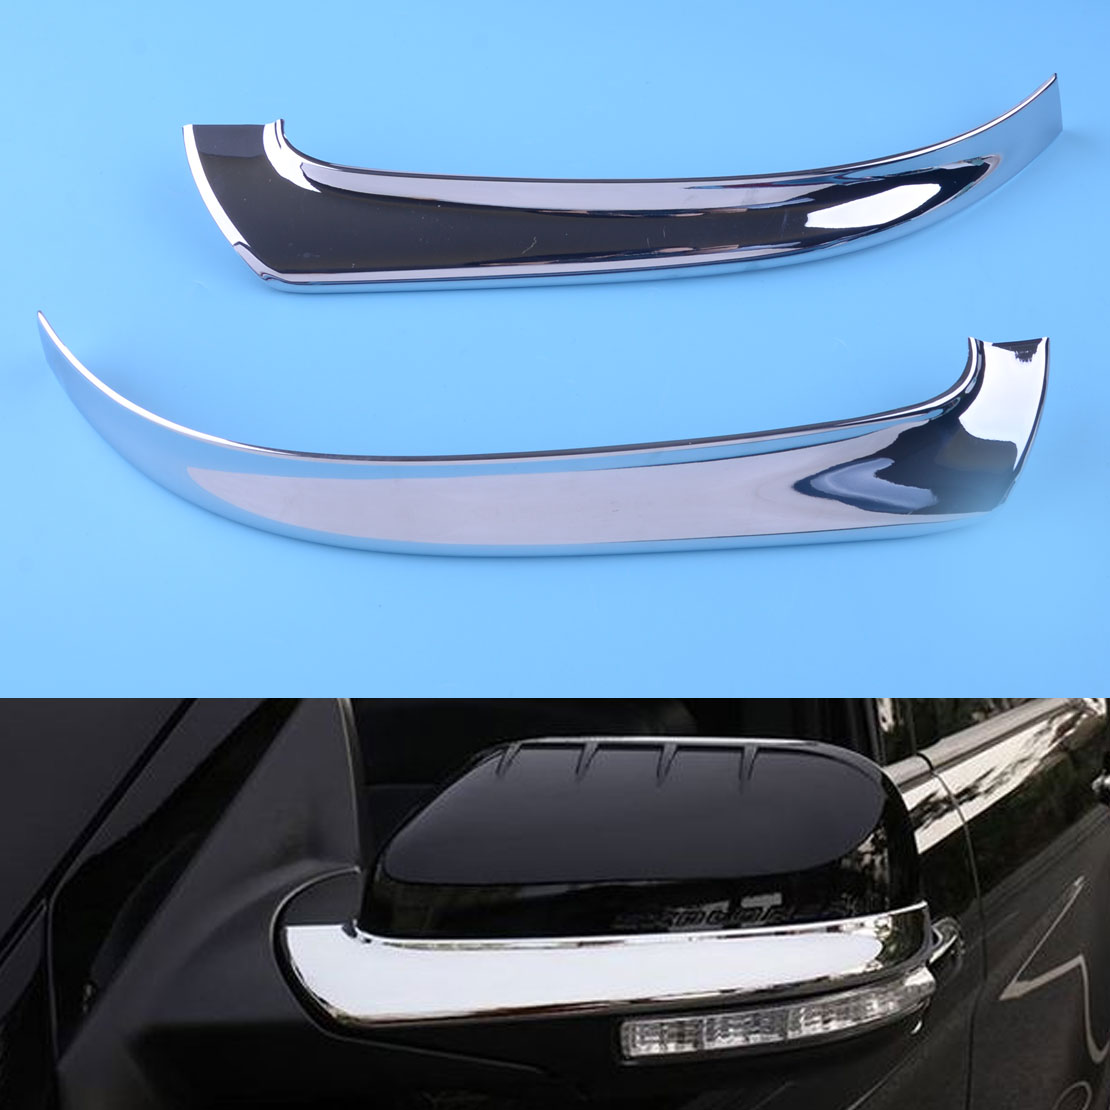 DWCX 2pcs Left Right Chrome Plated Rearview Side <font><b>Mirror</b></font> Cover Strip Trim Silver ABS Fit For <font><b>Ford</b></font> <font><b>Explorer</b></font> 2016 2017 2018 2019 image